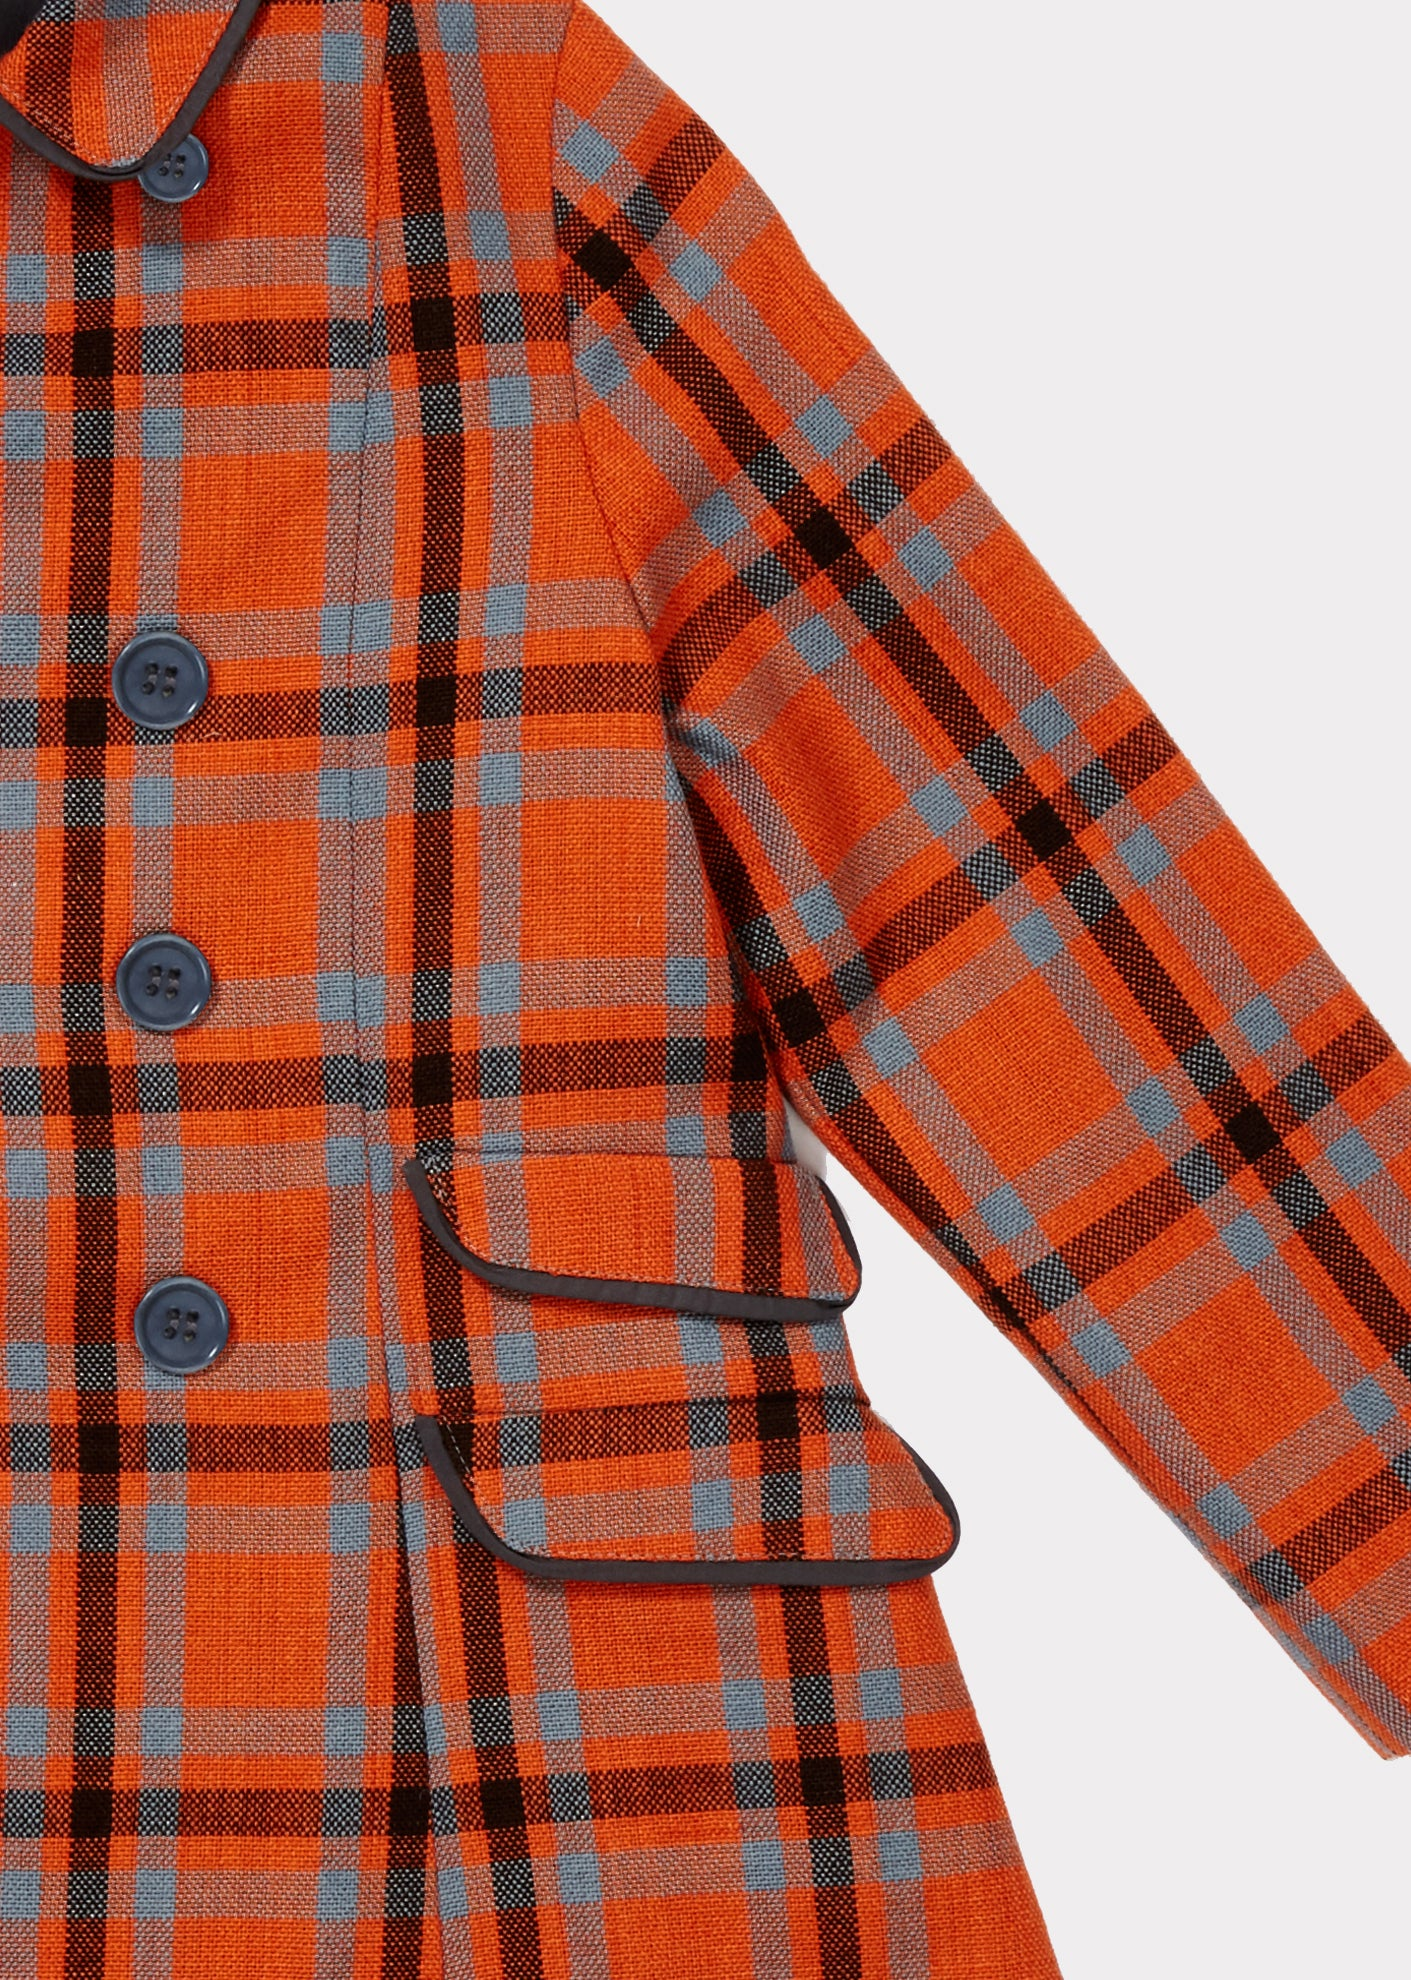 CARAMEL Ladoga Coat - Orange Check